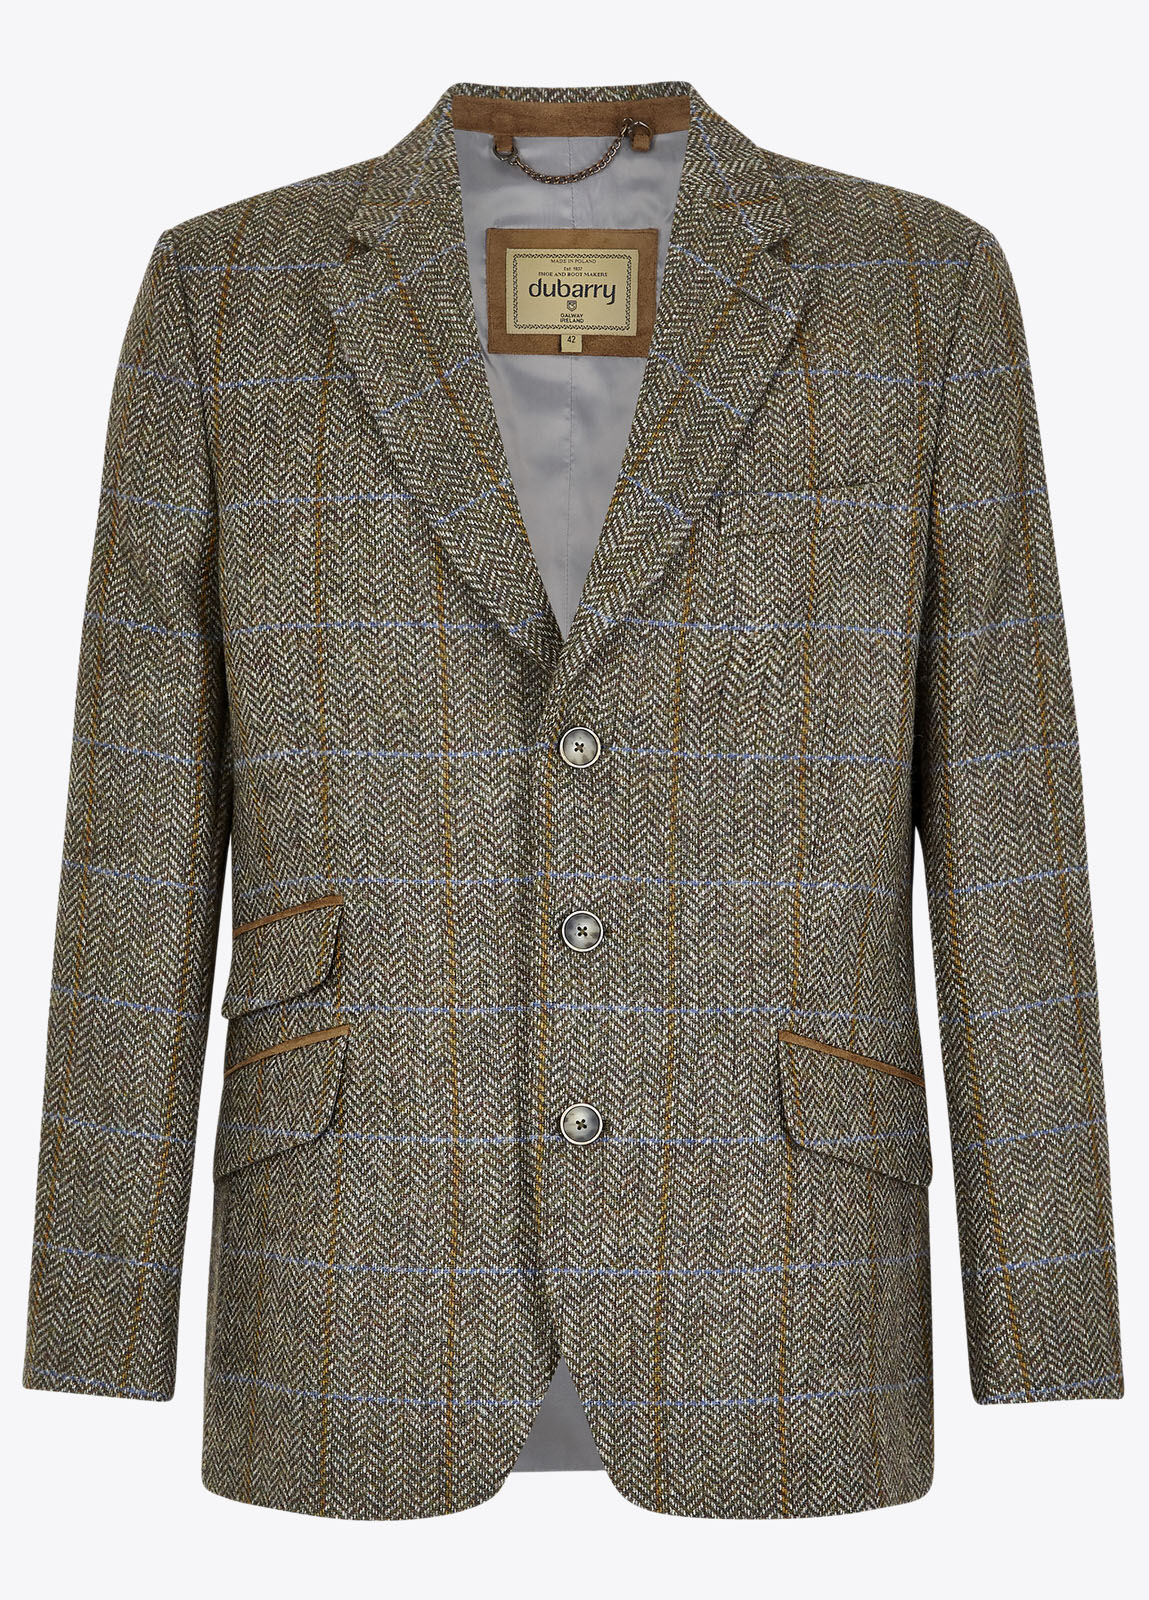 Rockingham Tweed Jacket - Woodbine